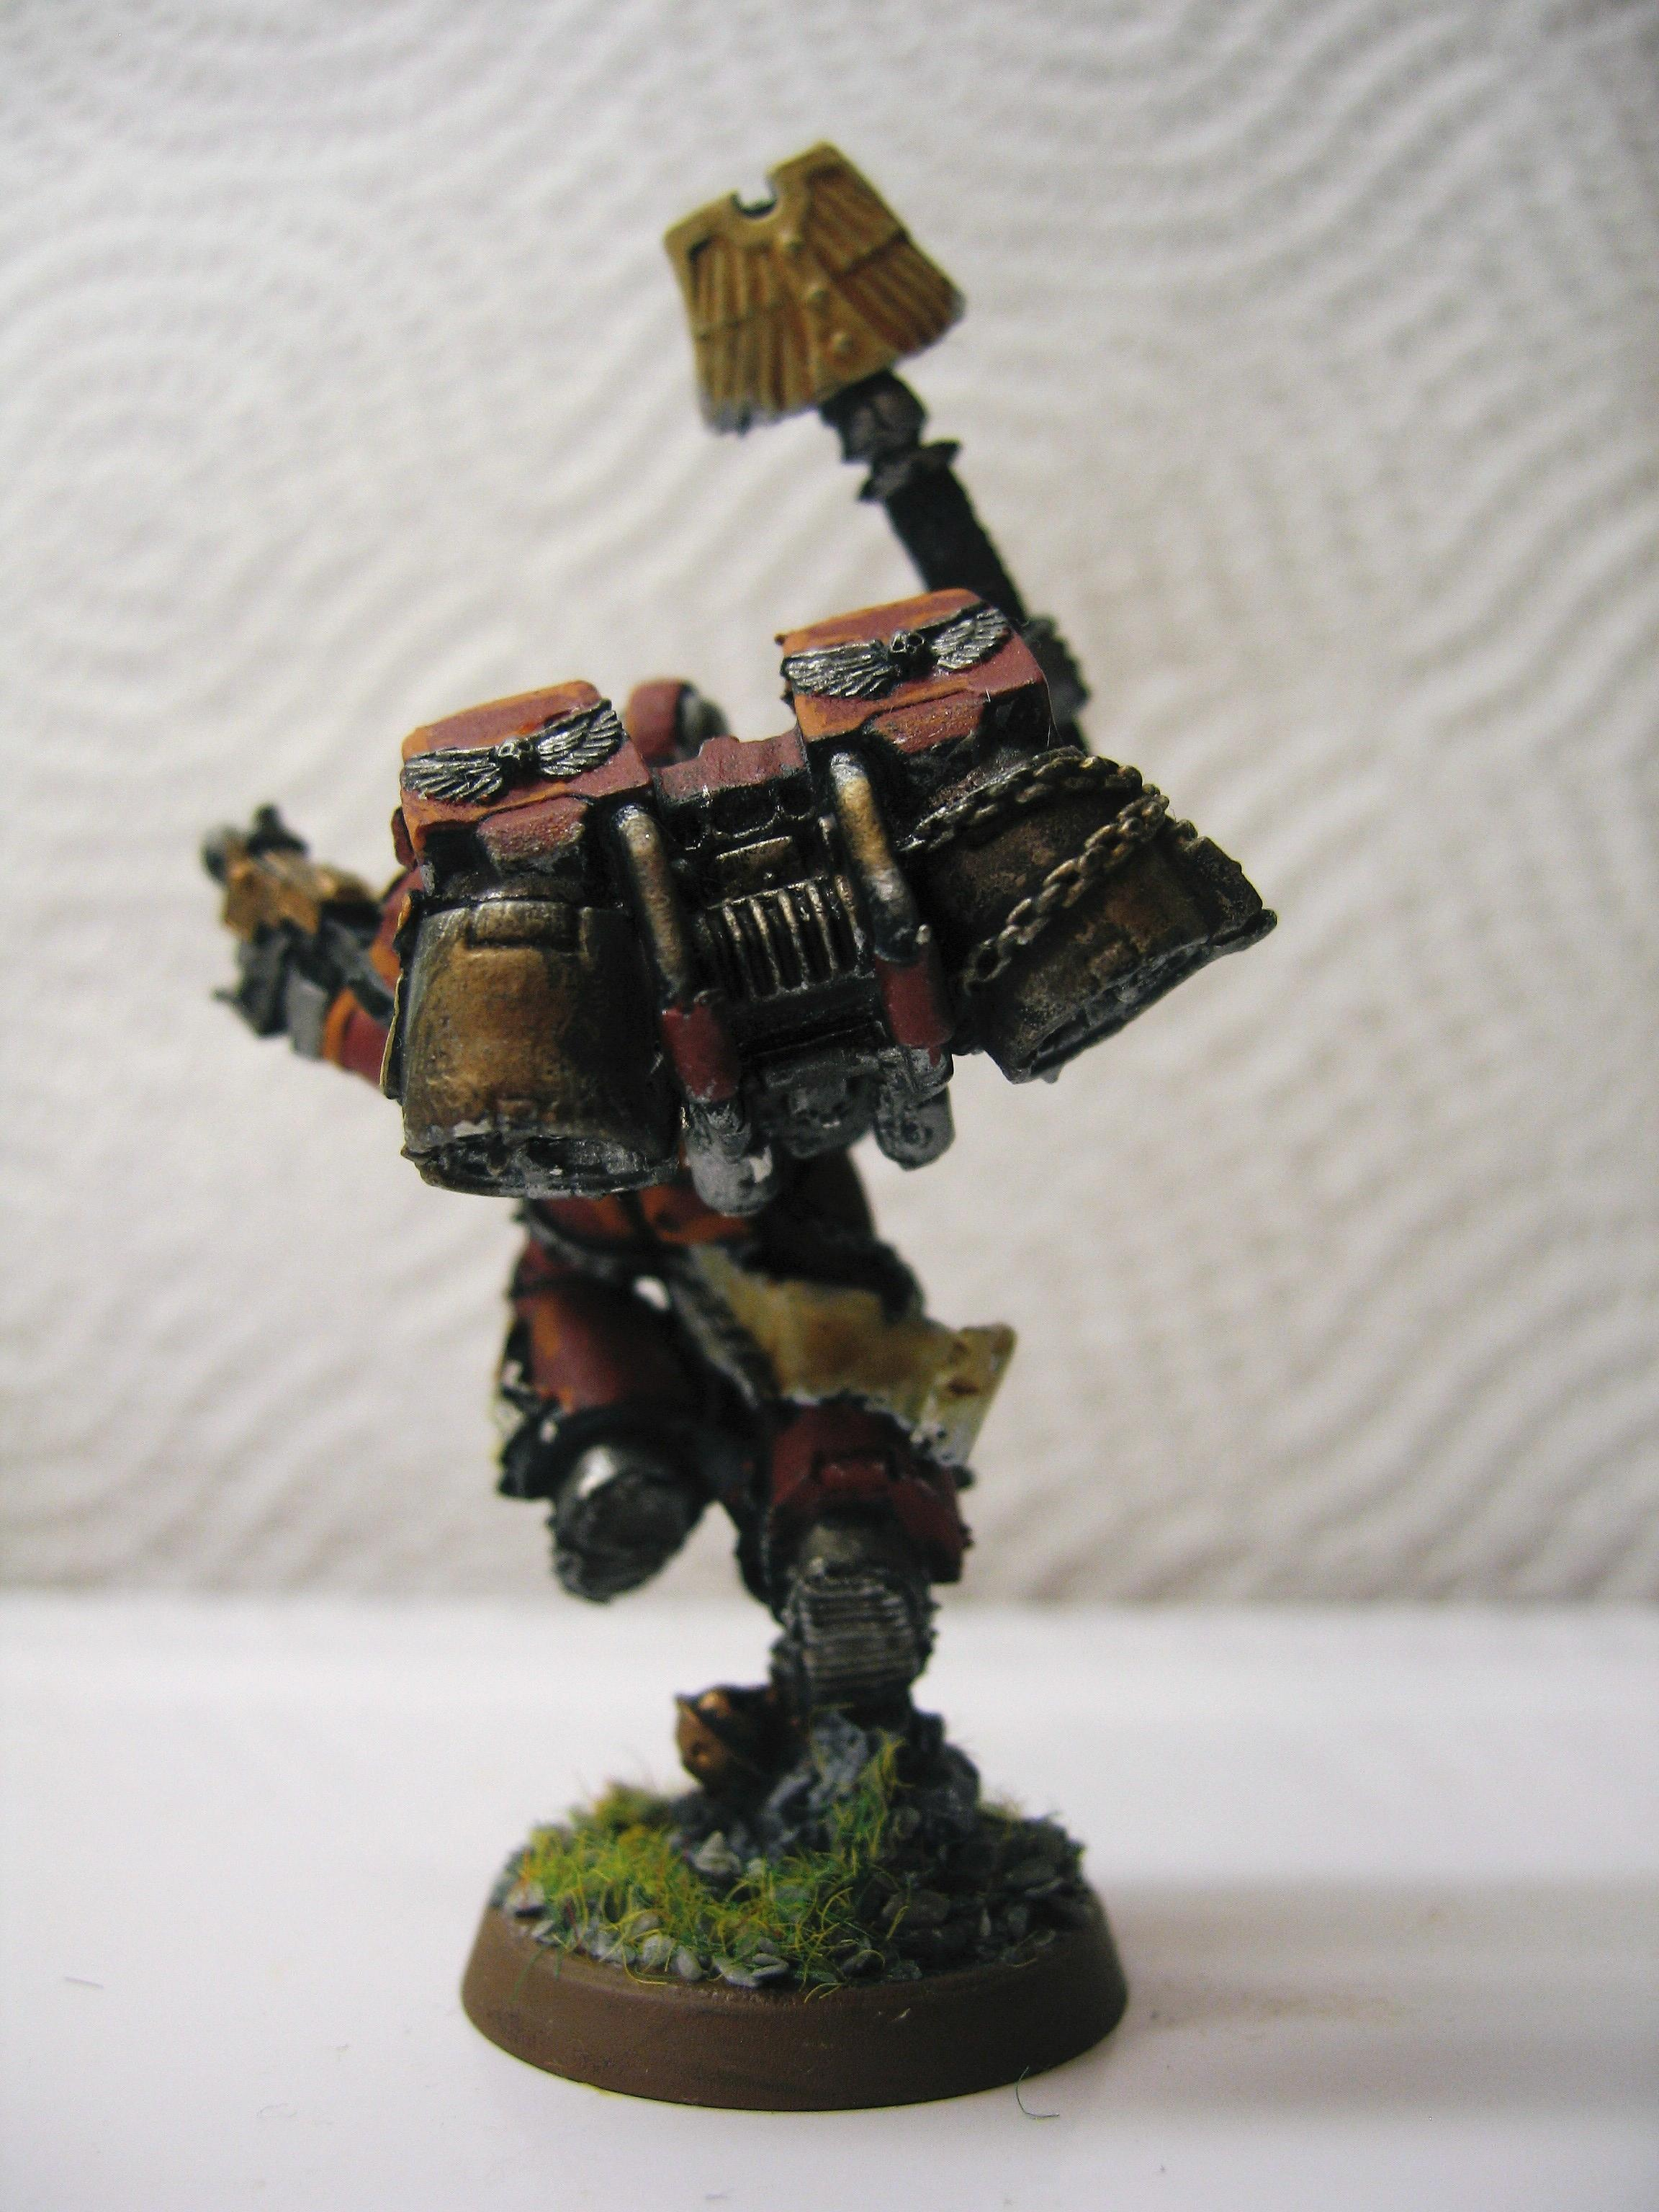 Chaplain, Dawn Knights, Models, Painted, Red, Space Marines, Warhammer 40,000